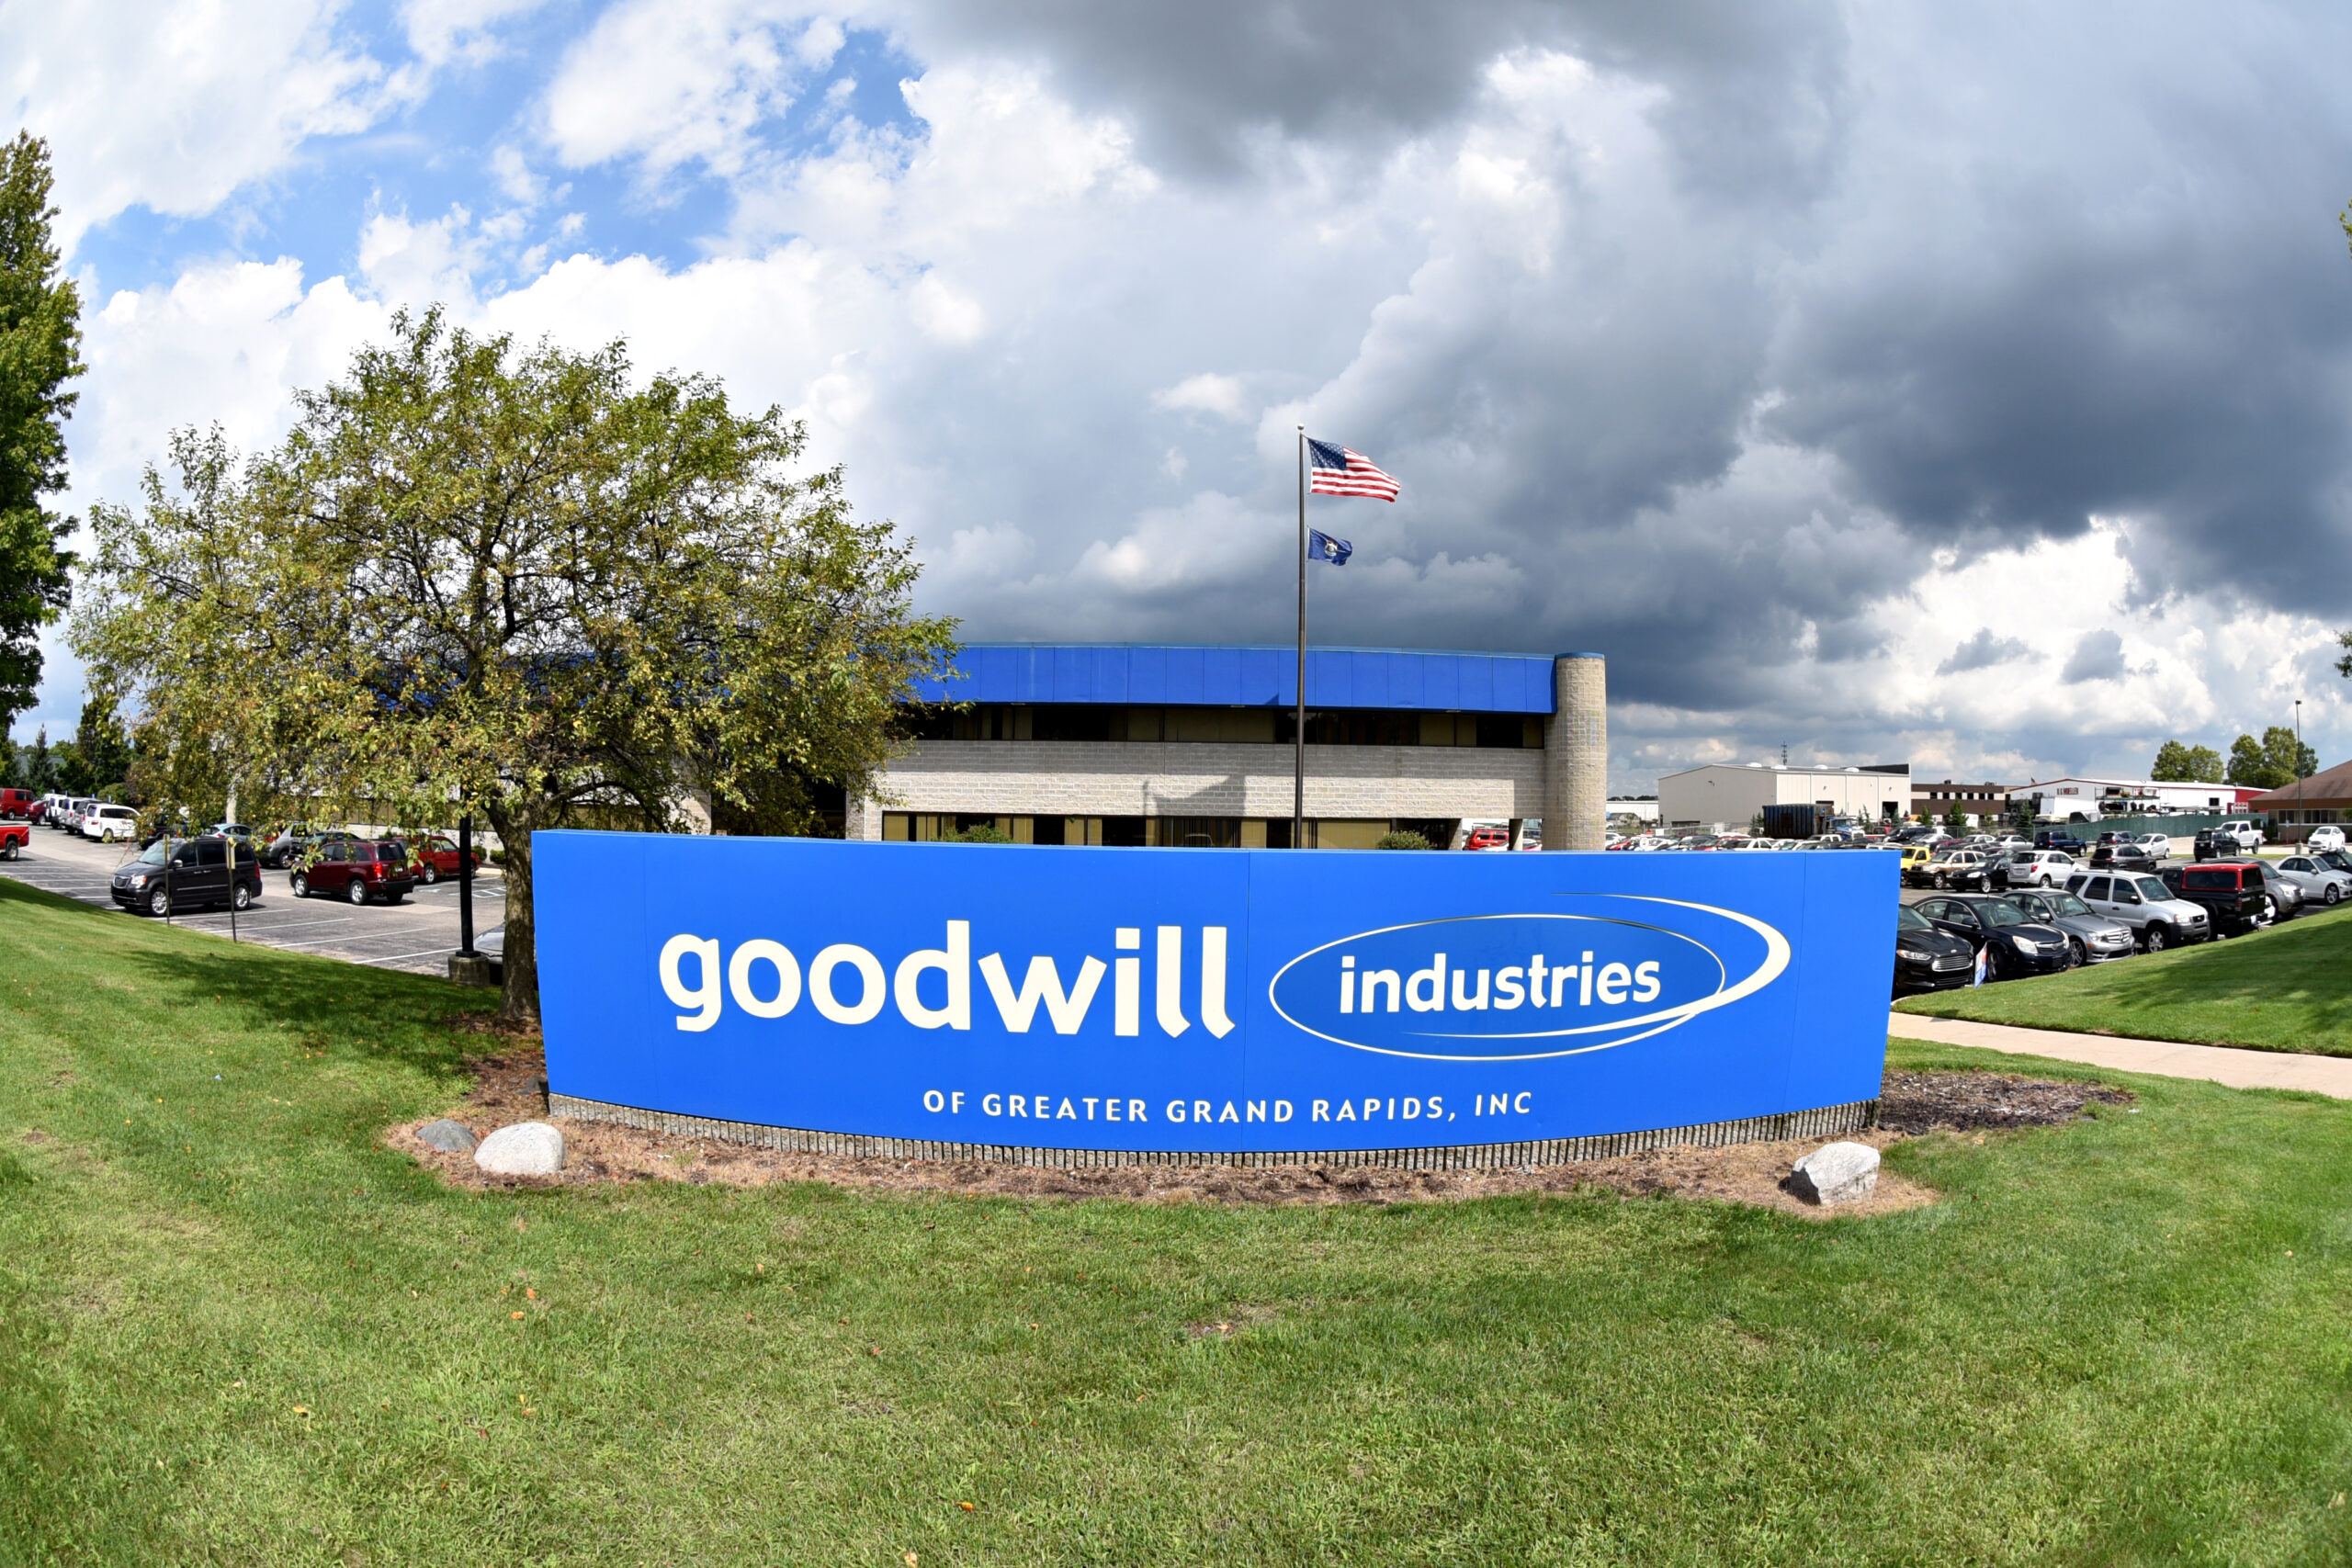 exterior of Goodwill headquarters